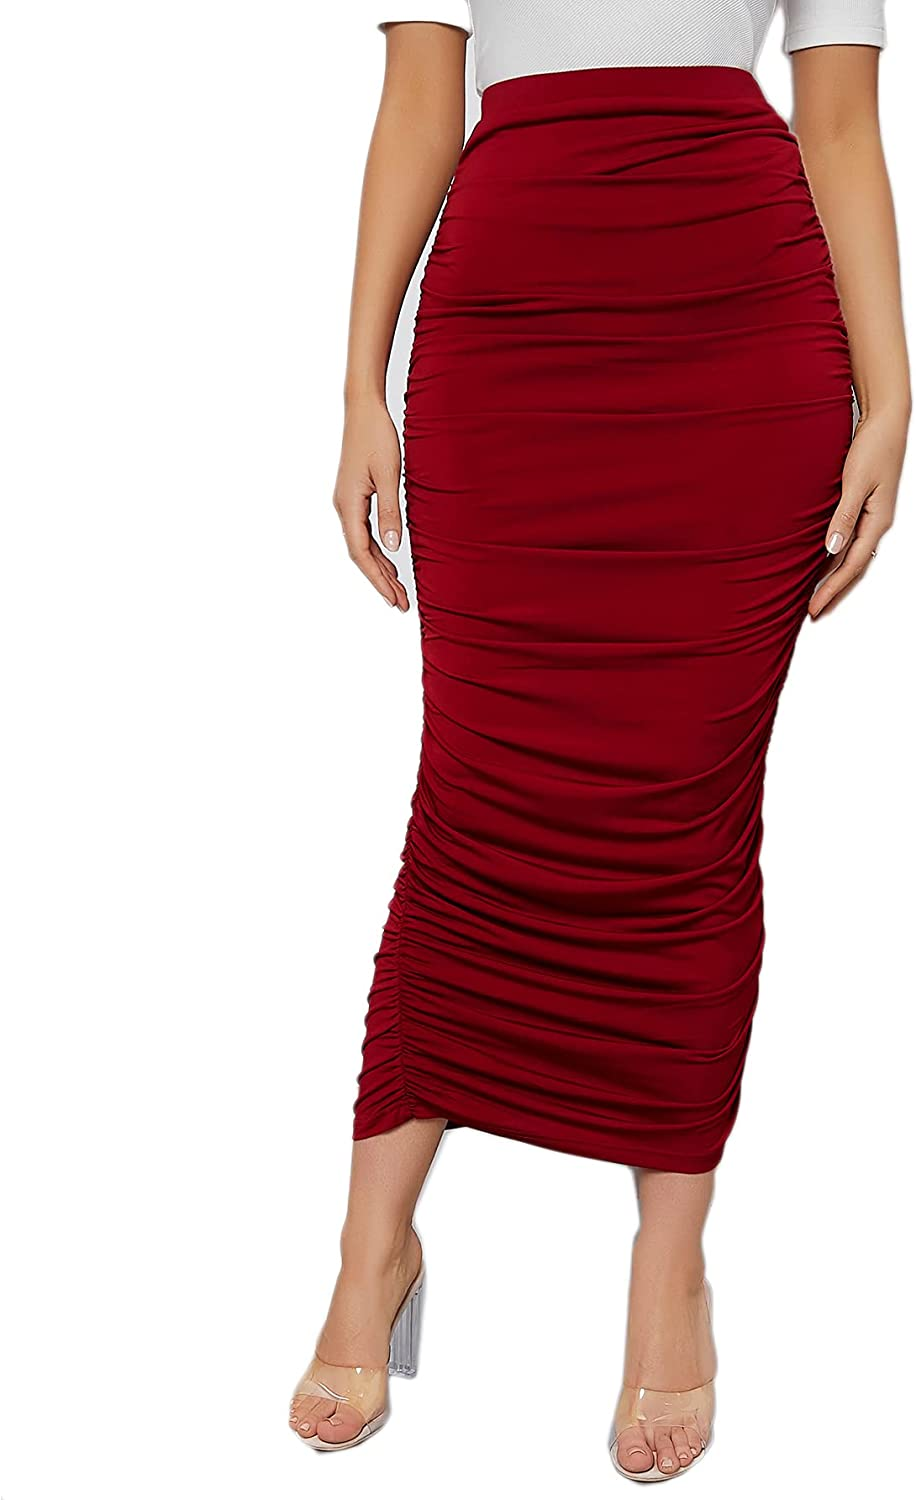 Verdusa Women's High Waist Ruched Side Solid Long Bodycon Pencil Skirt